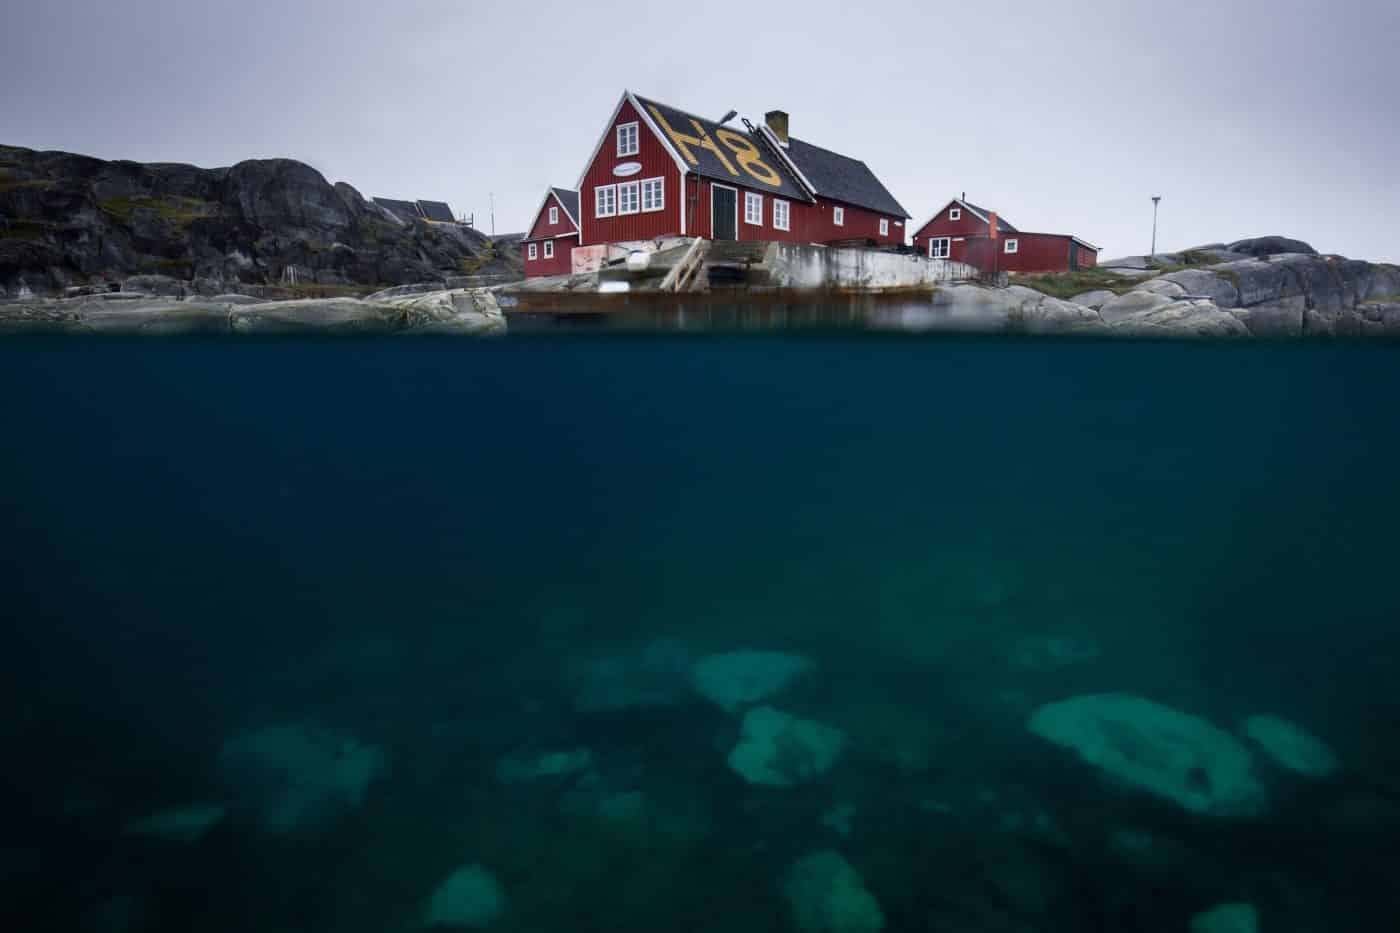 Restaurant H8 in Oqaatsut in the Disko Bay, Greenland. By Mads Pihl